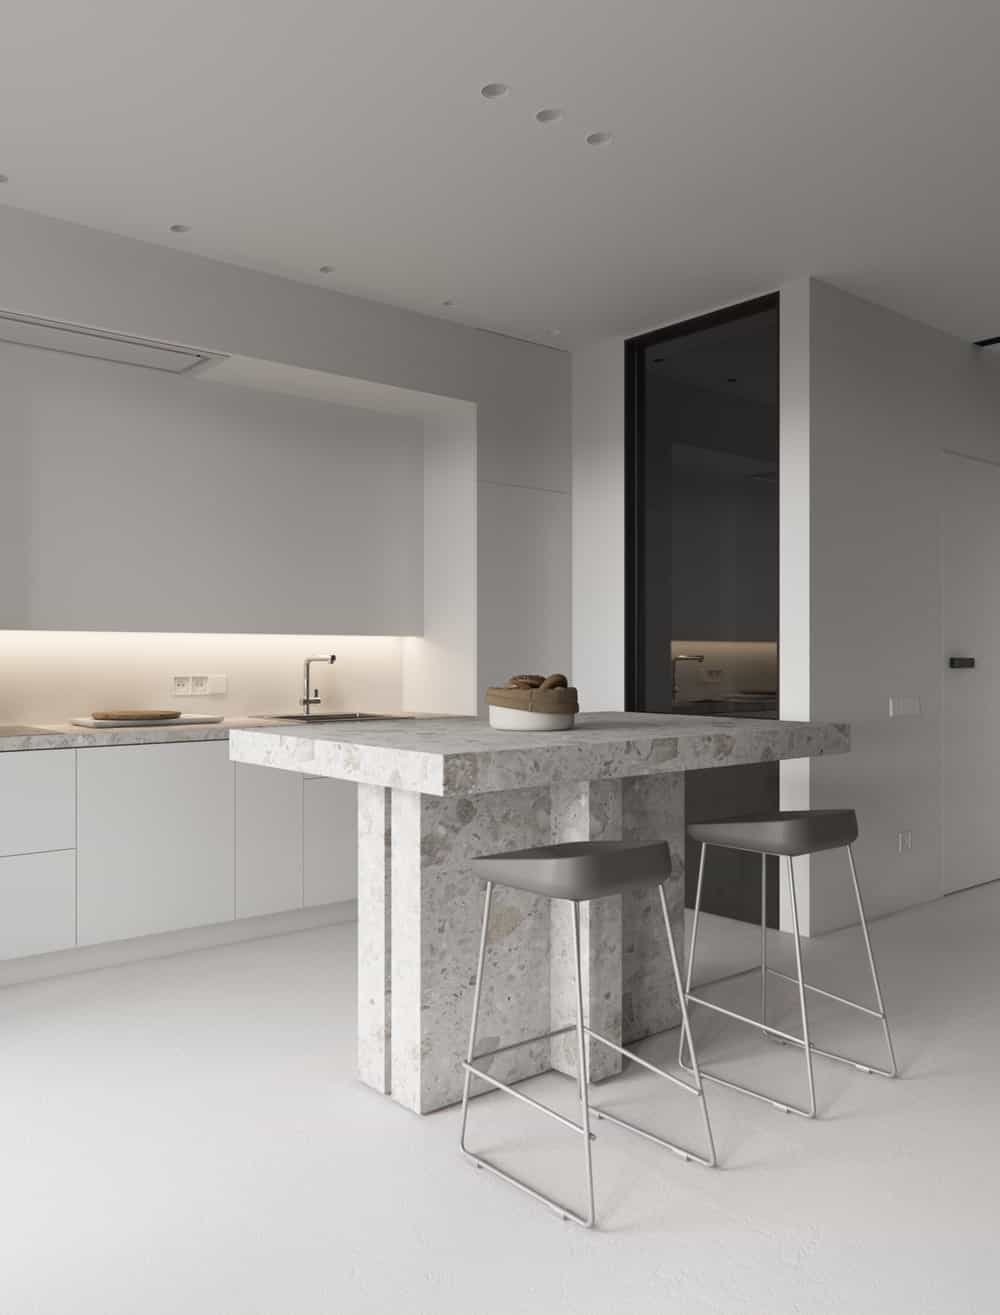 The small gray marble kitchen island is complemented by a couple of gray stools.